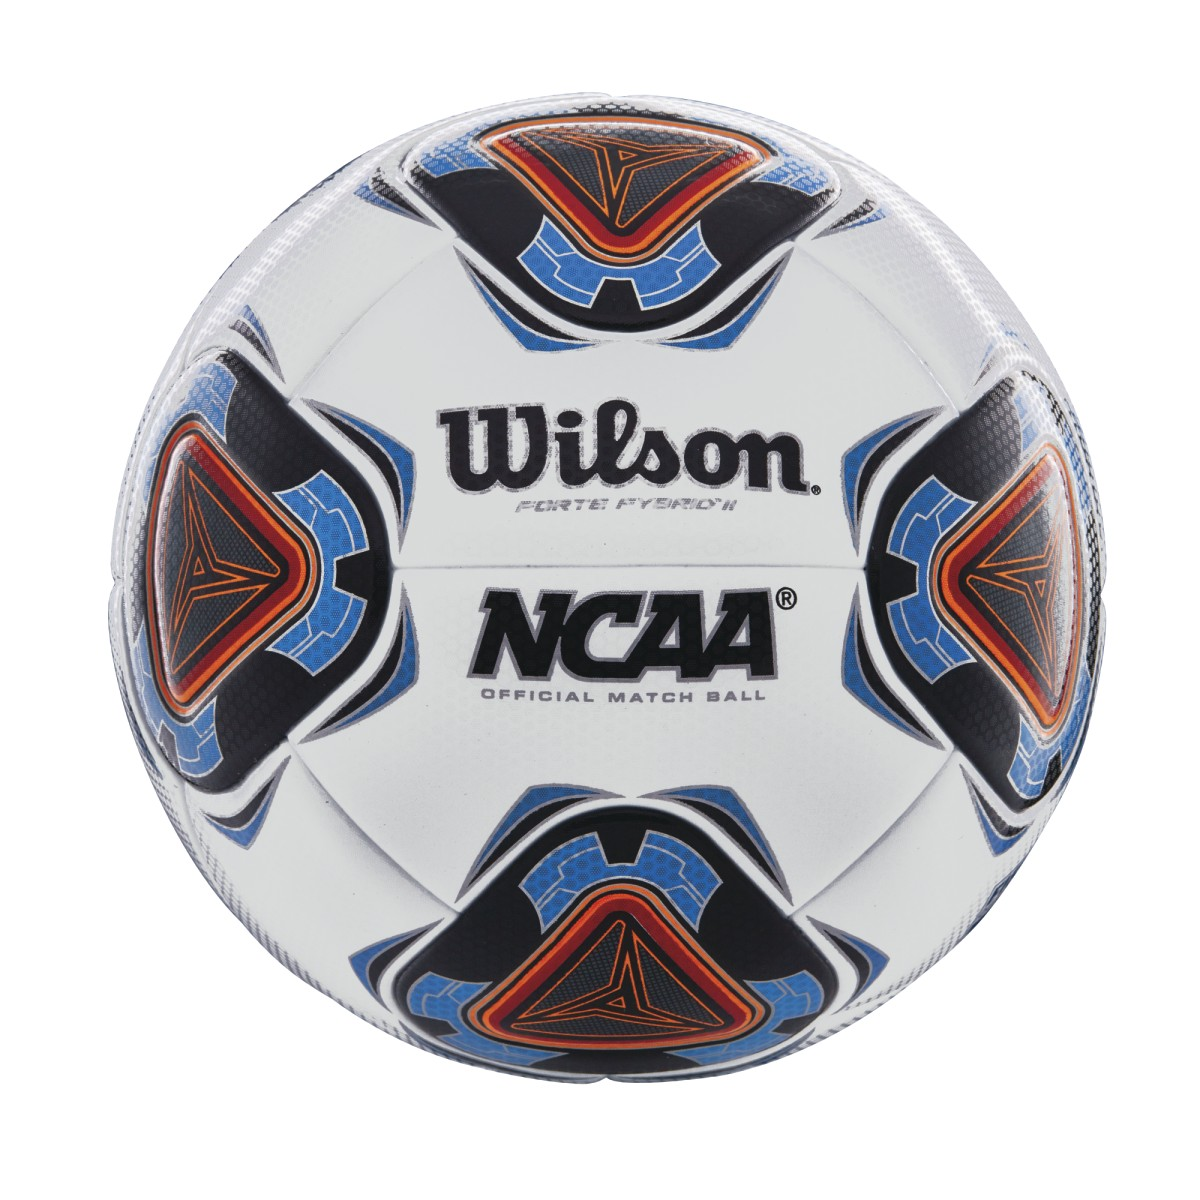 SCHSL Adopts Wilson Soccer Ball for Playoffs